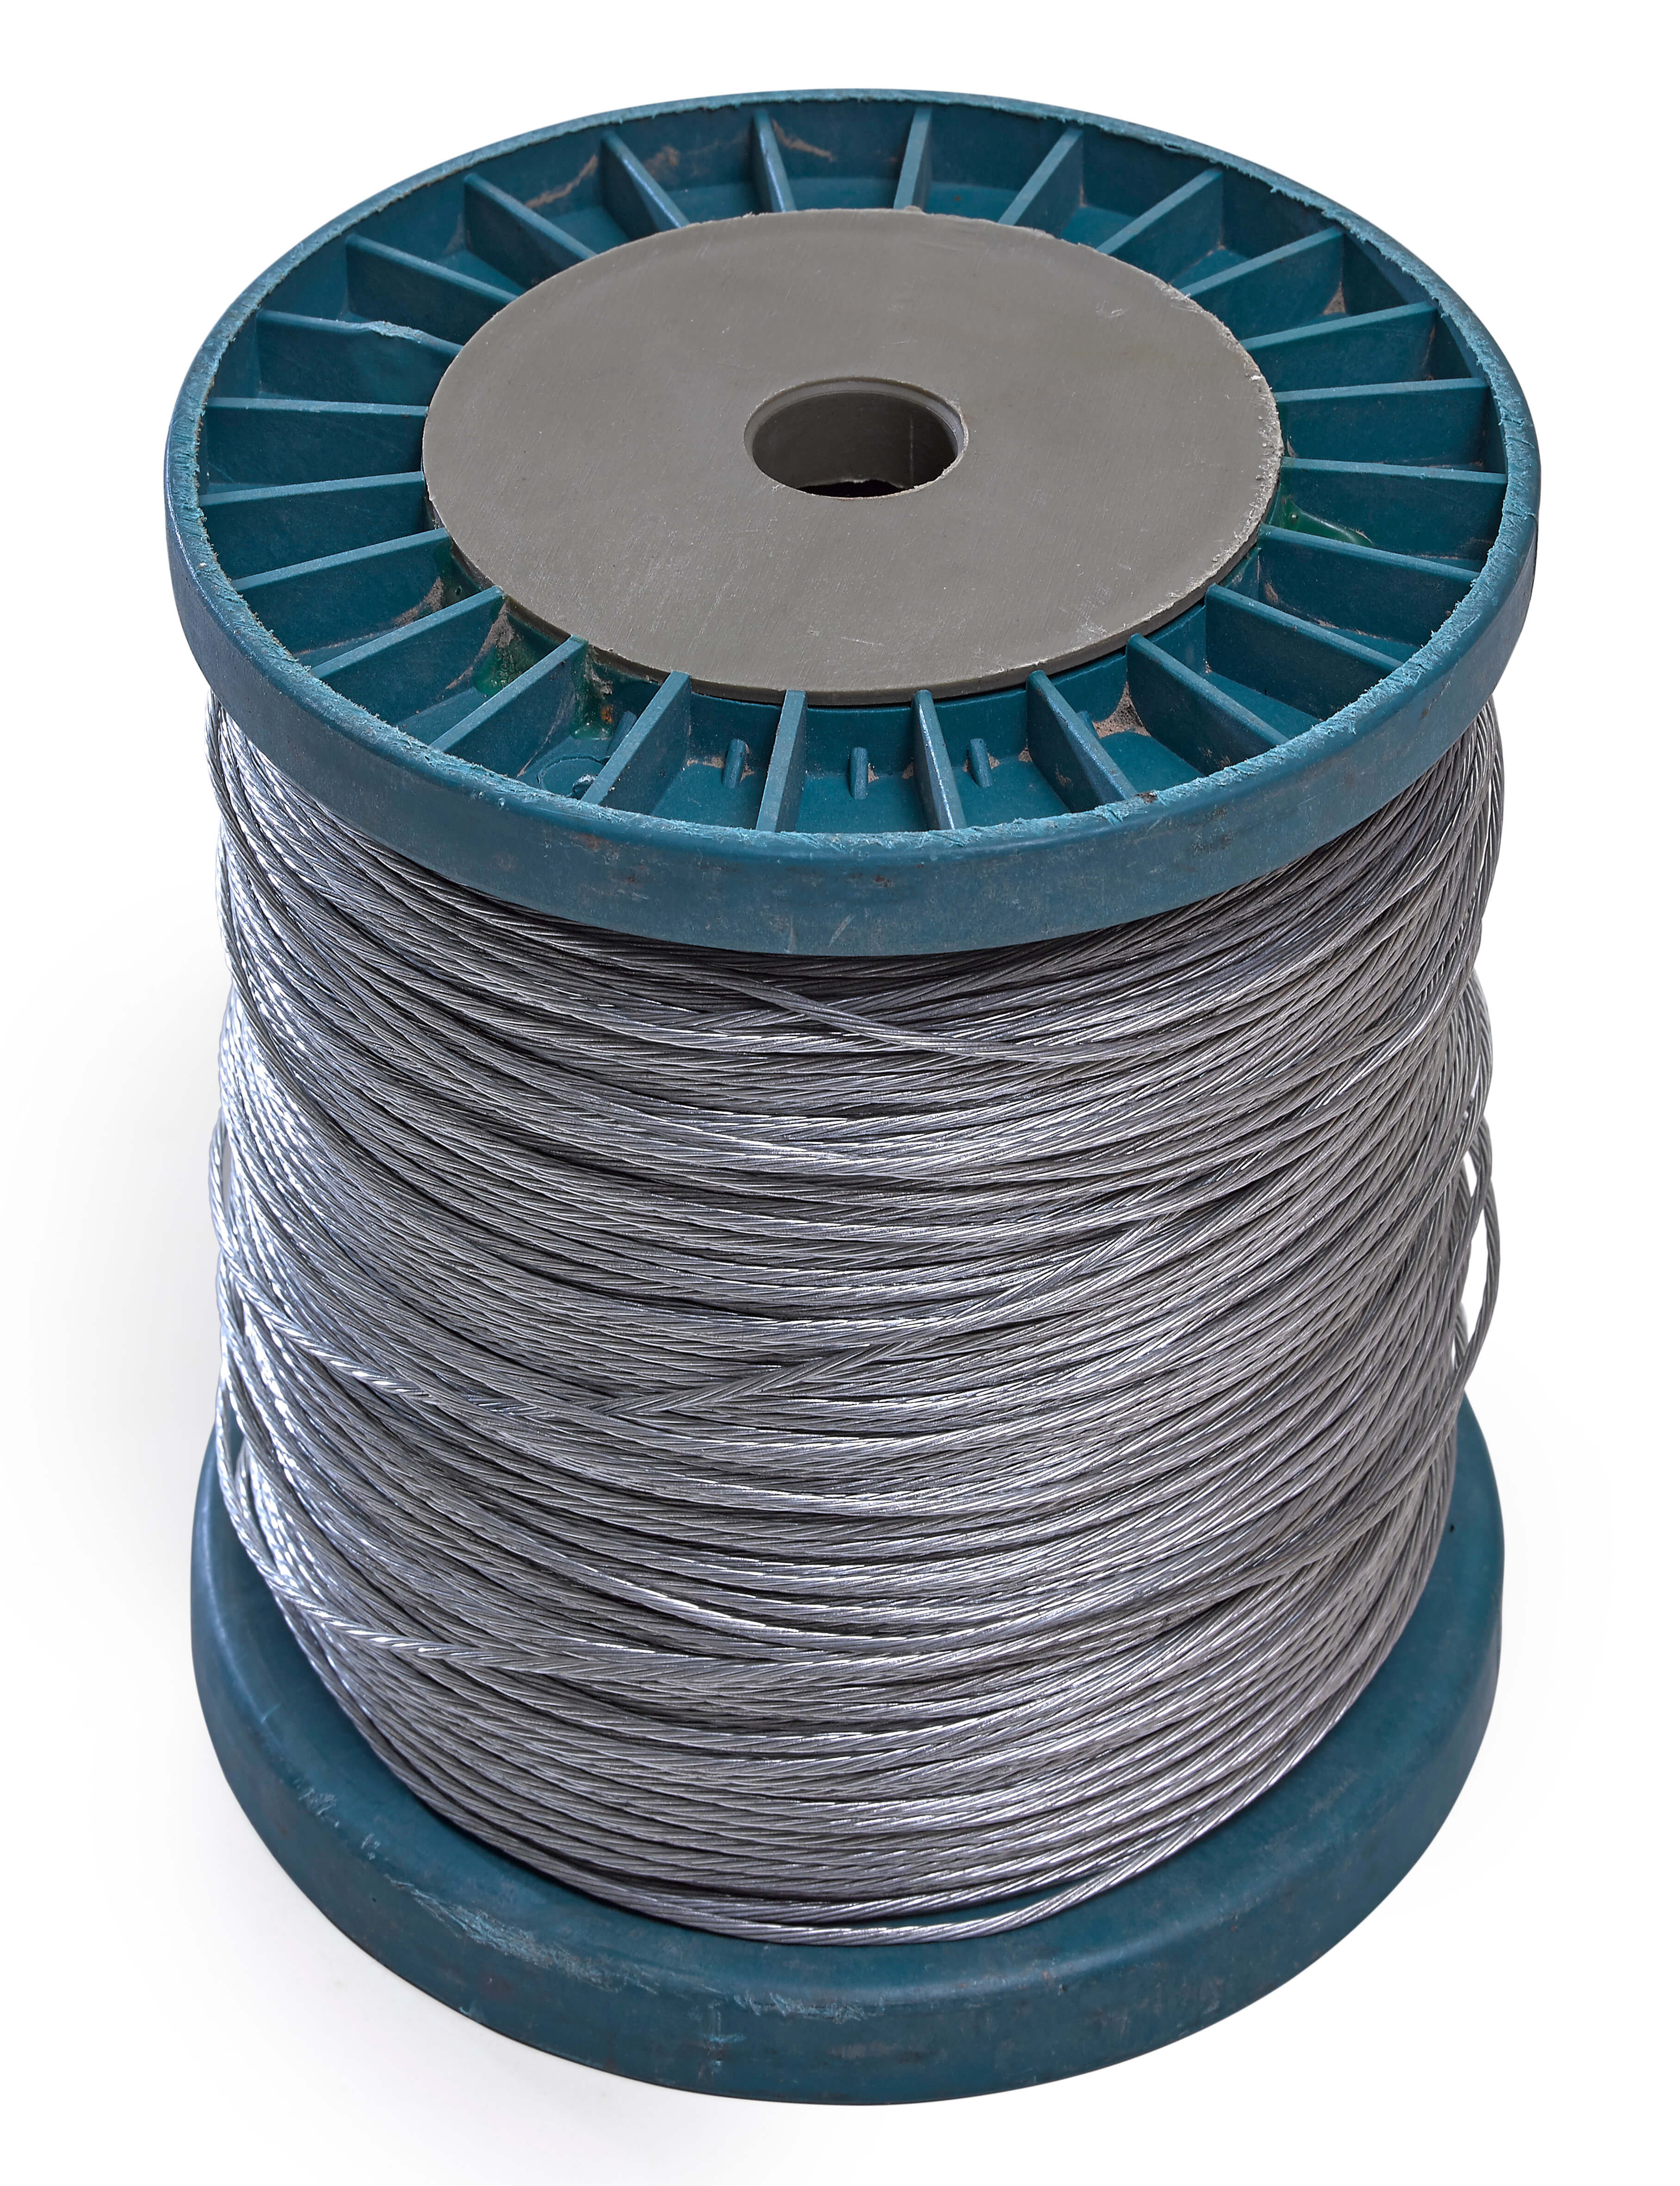 Strand electric fence wire uniwire